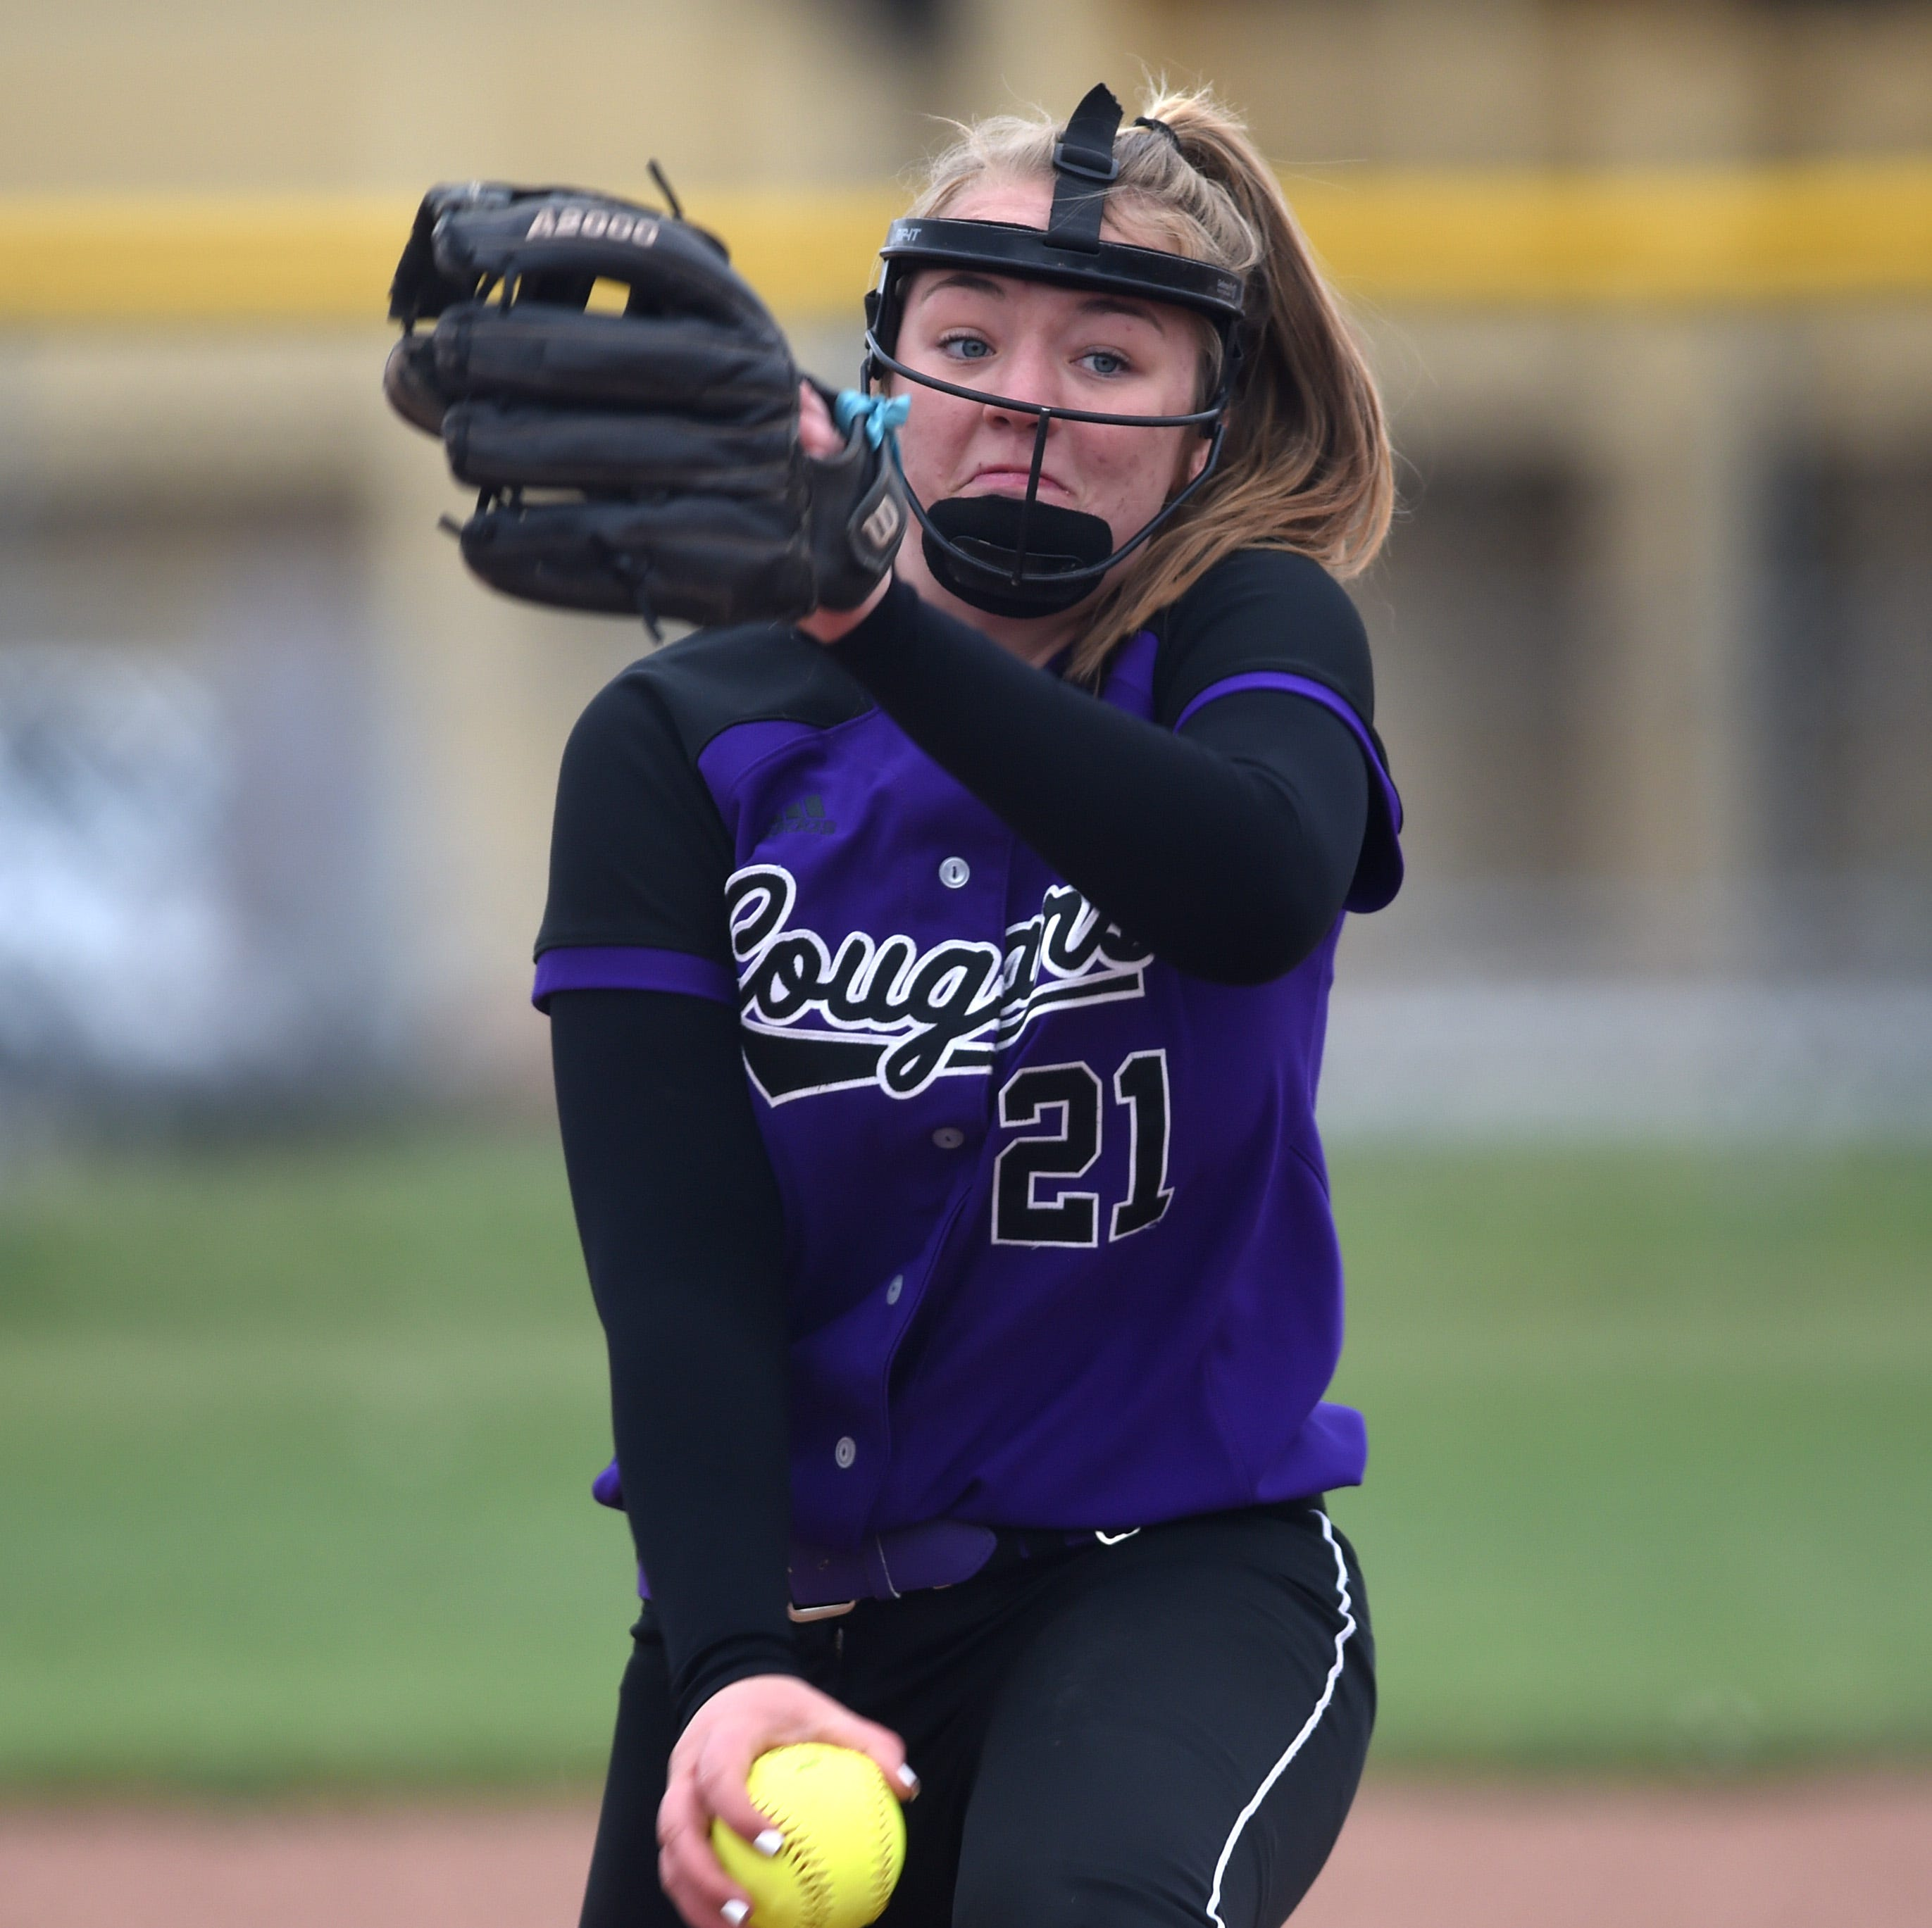 Younger Spanish Springs team still getting it done on softball field